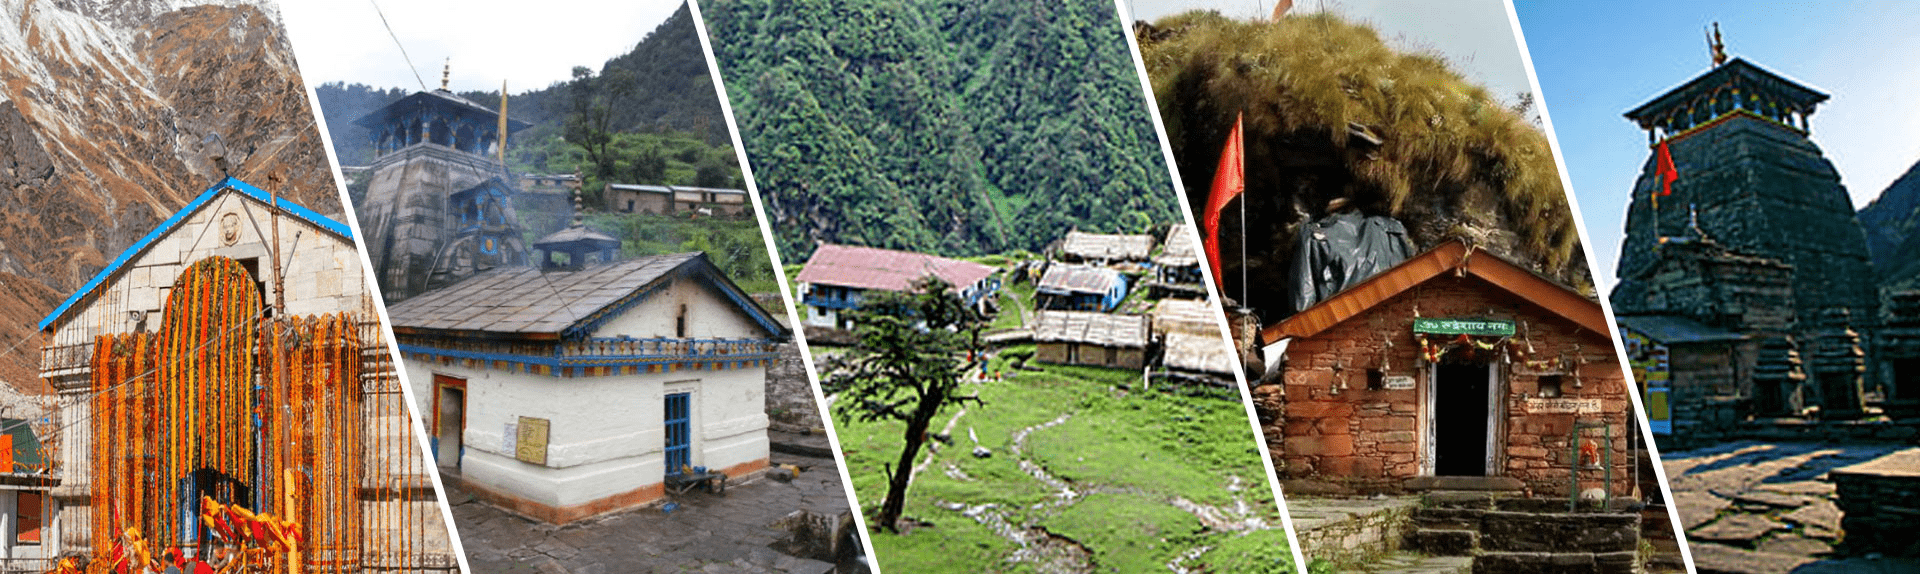 Uttarakhand's Panch Kedar Yatra is a sacred journey through Kedarnath temple, Tungnath temple, Madhyamaheshwar, Rudranath and Kalpanath